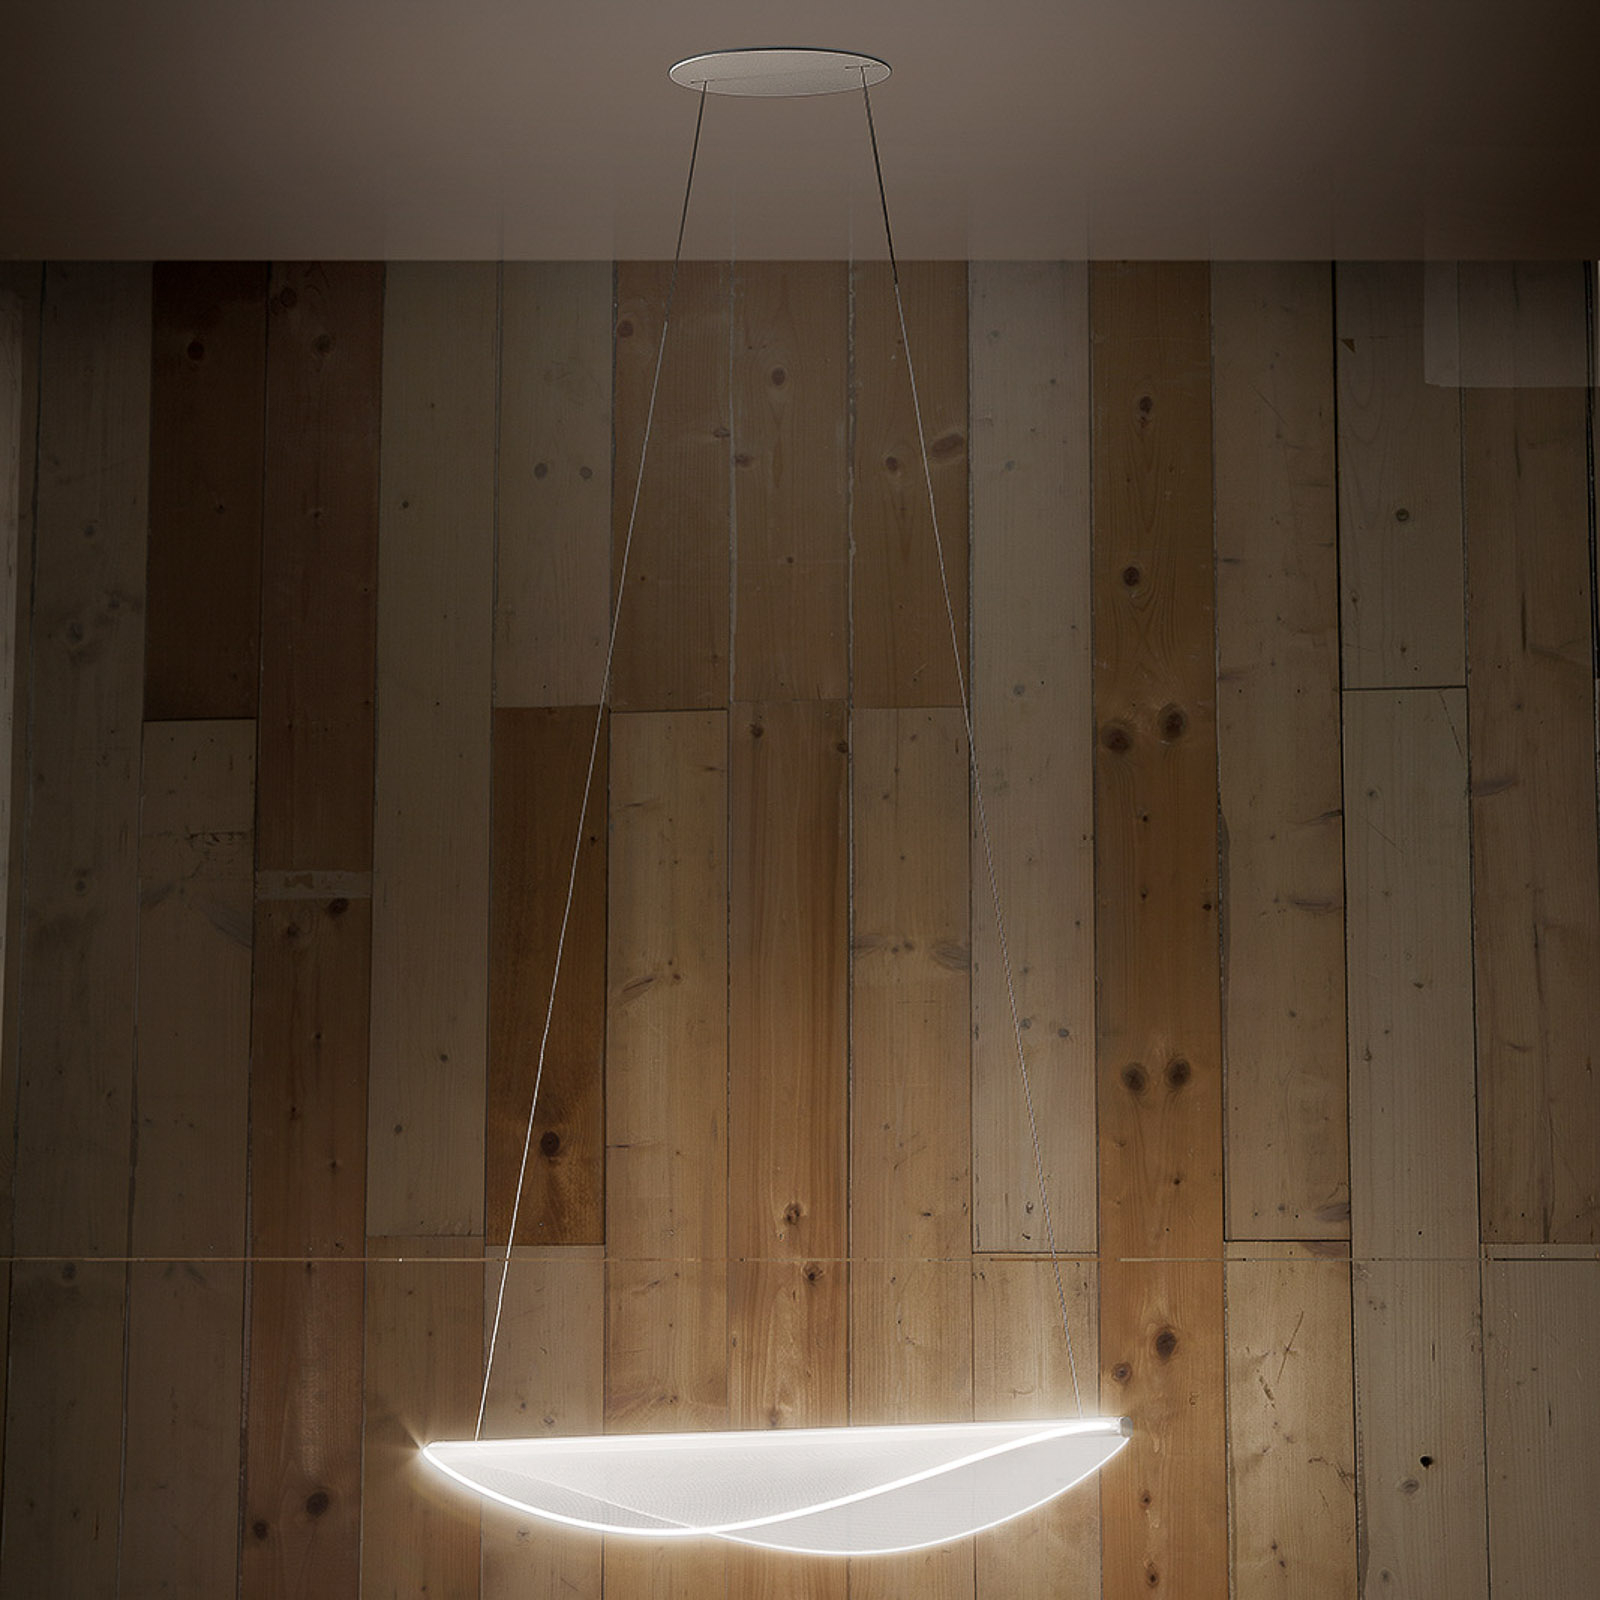 Suspension LED Diphy, 76cm, dimmable DALI